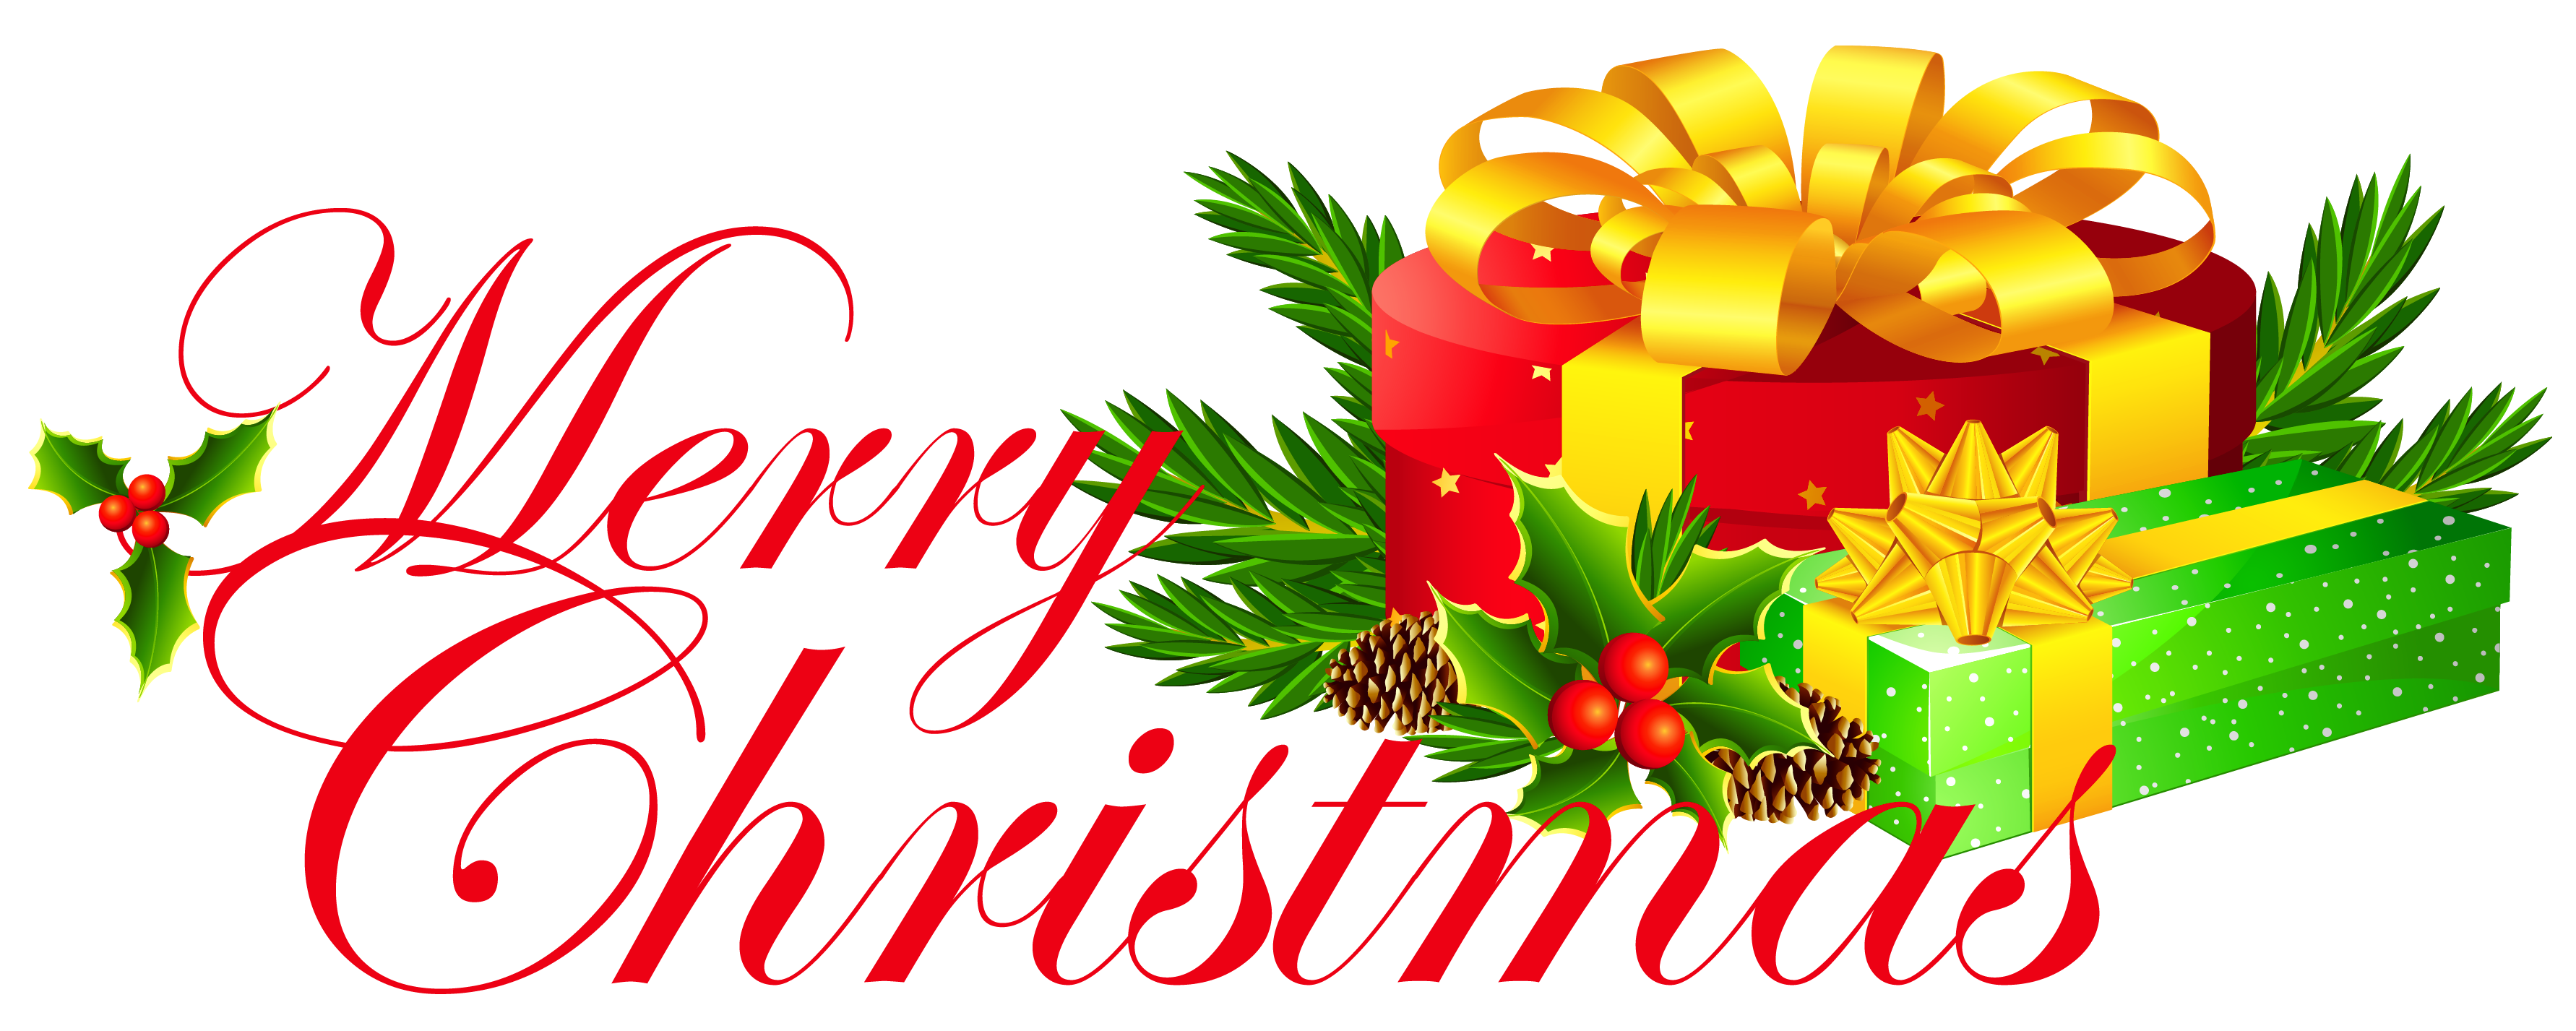 3565x1427 Sign Clipart Merry Christmas